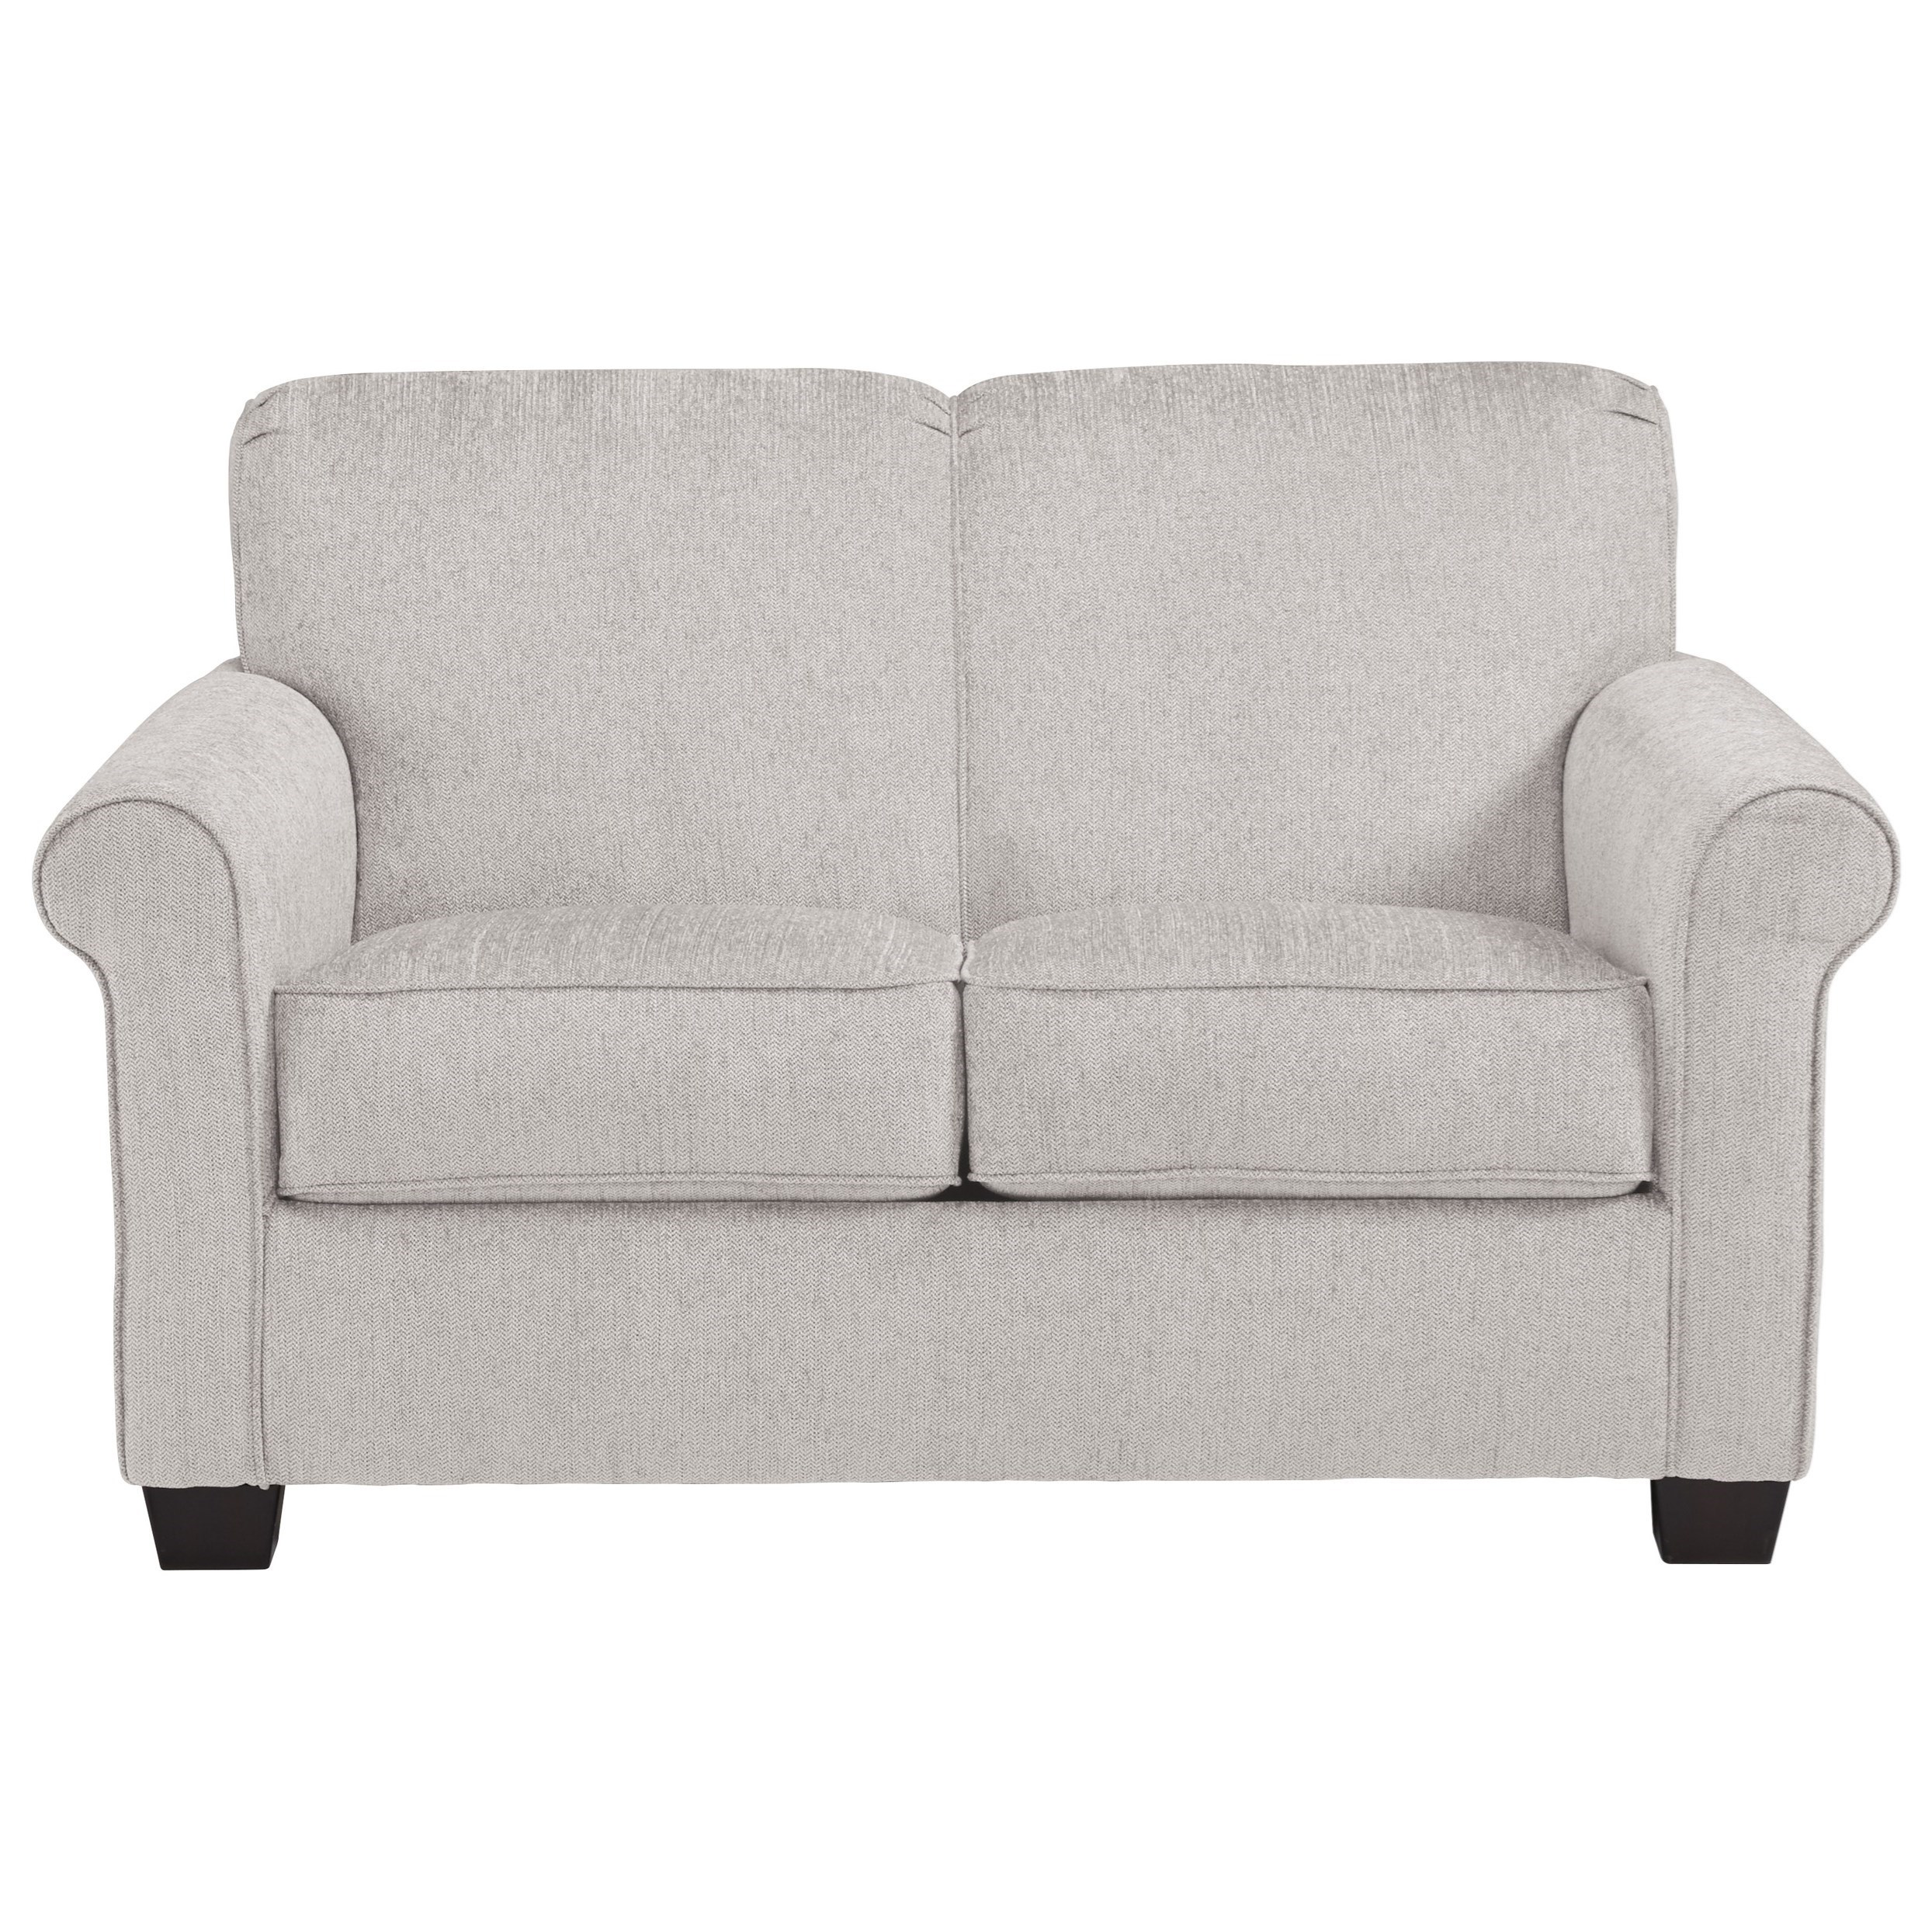 Signature Design by Ashley Cansler Twin Sleeper Sofa - Item Number: 7380737